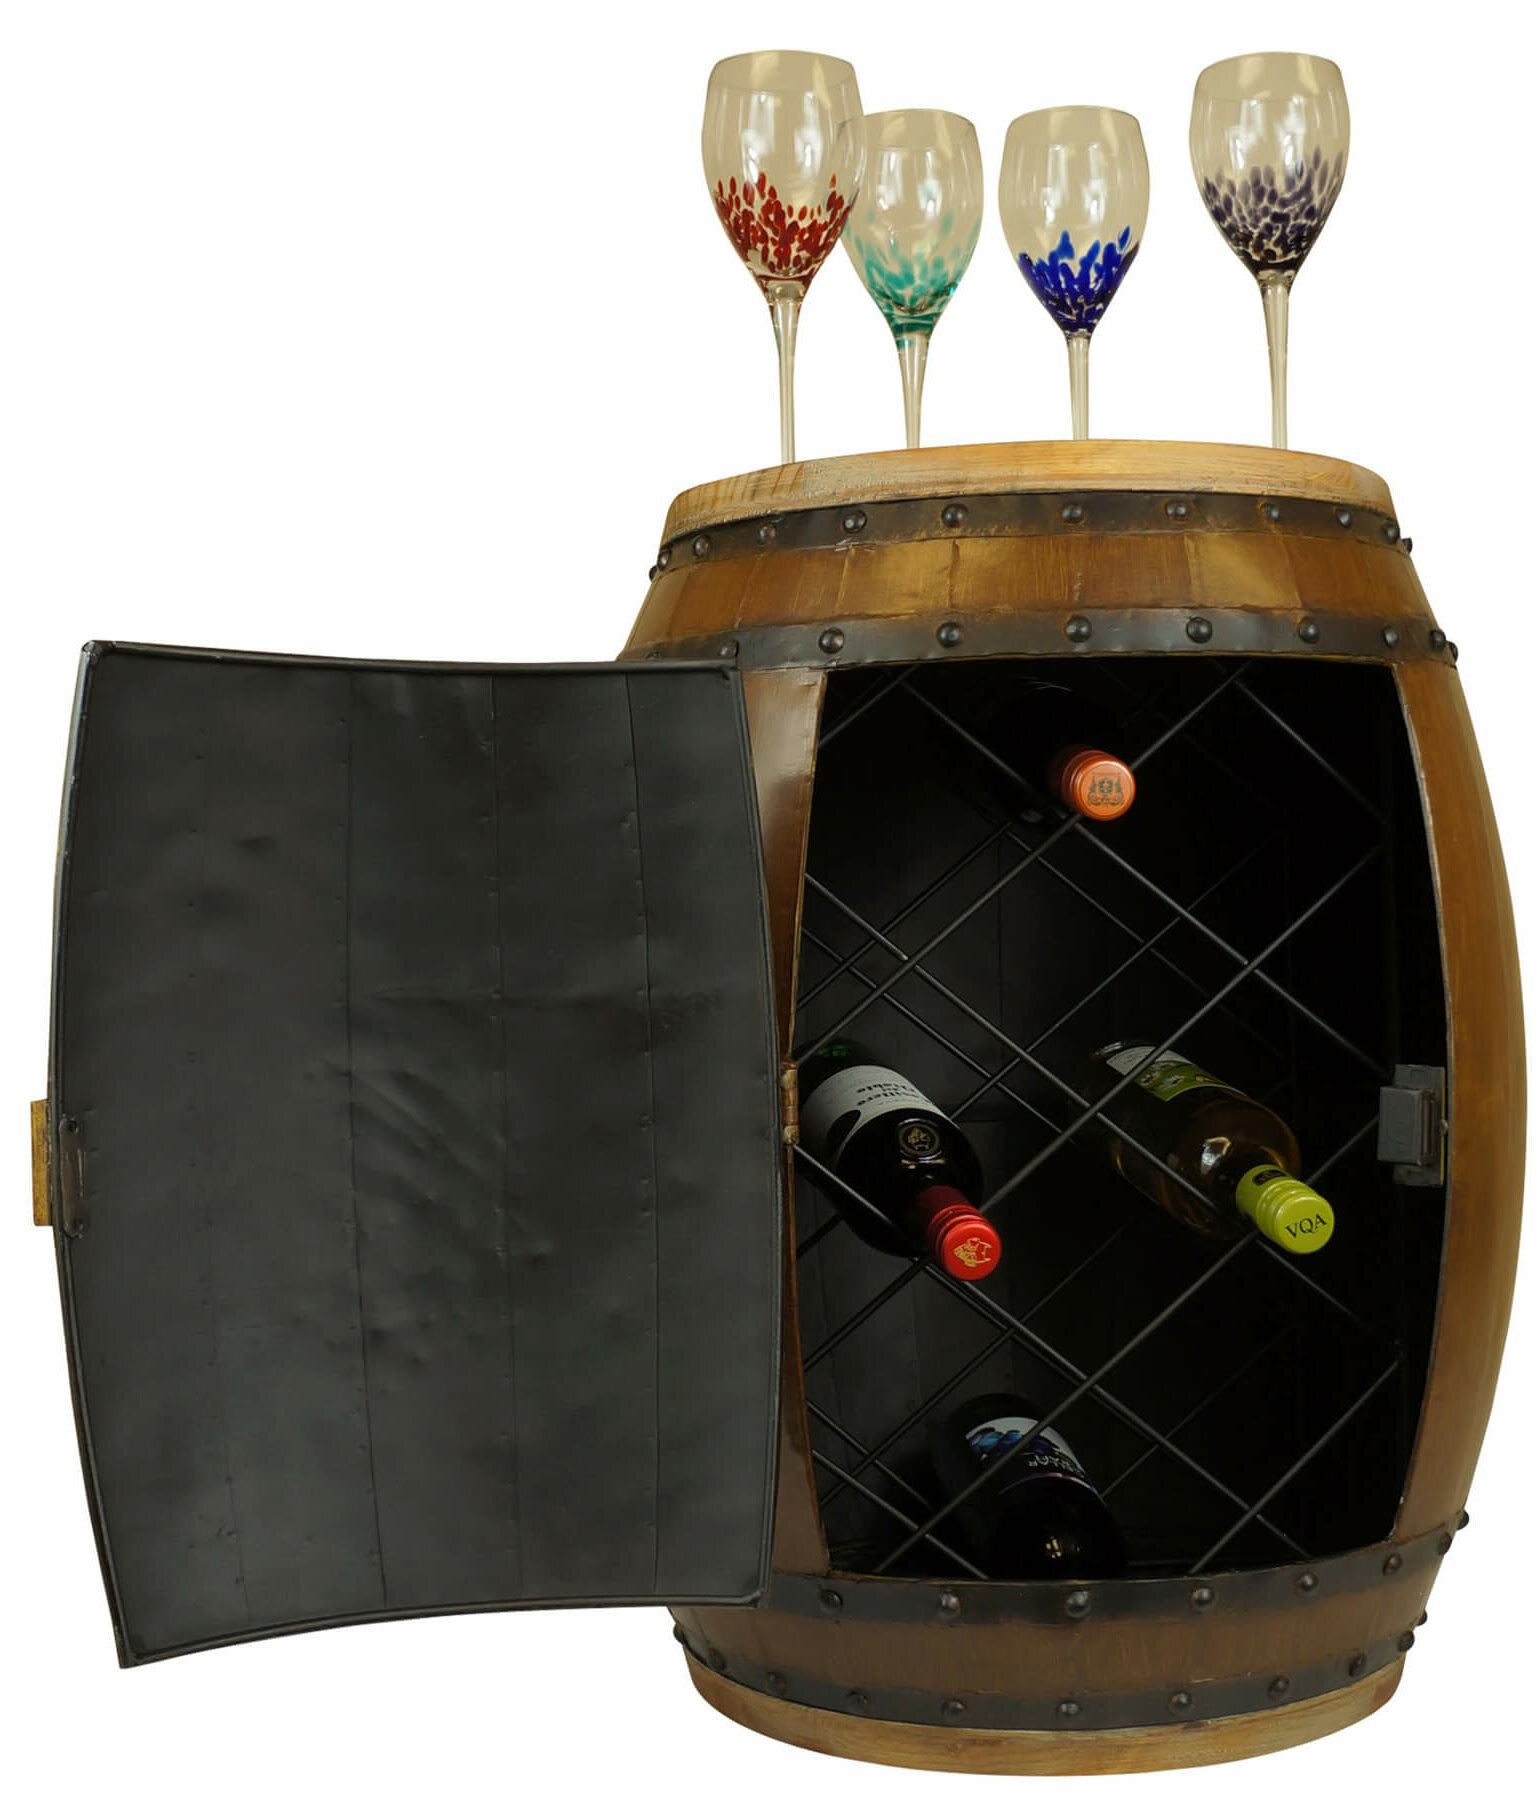 Mr Mjs Iron Barrel Shape Wine Rack Wayfair